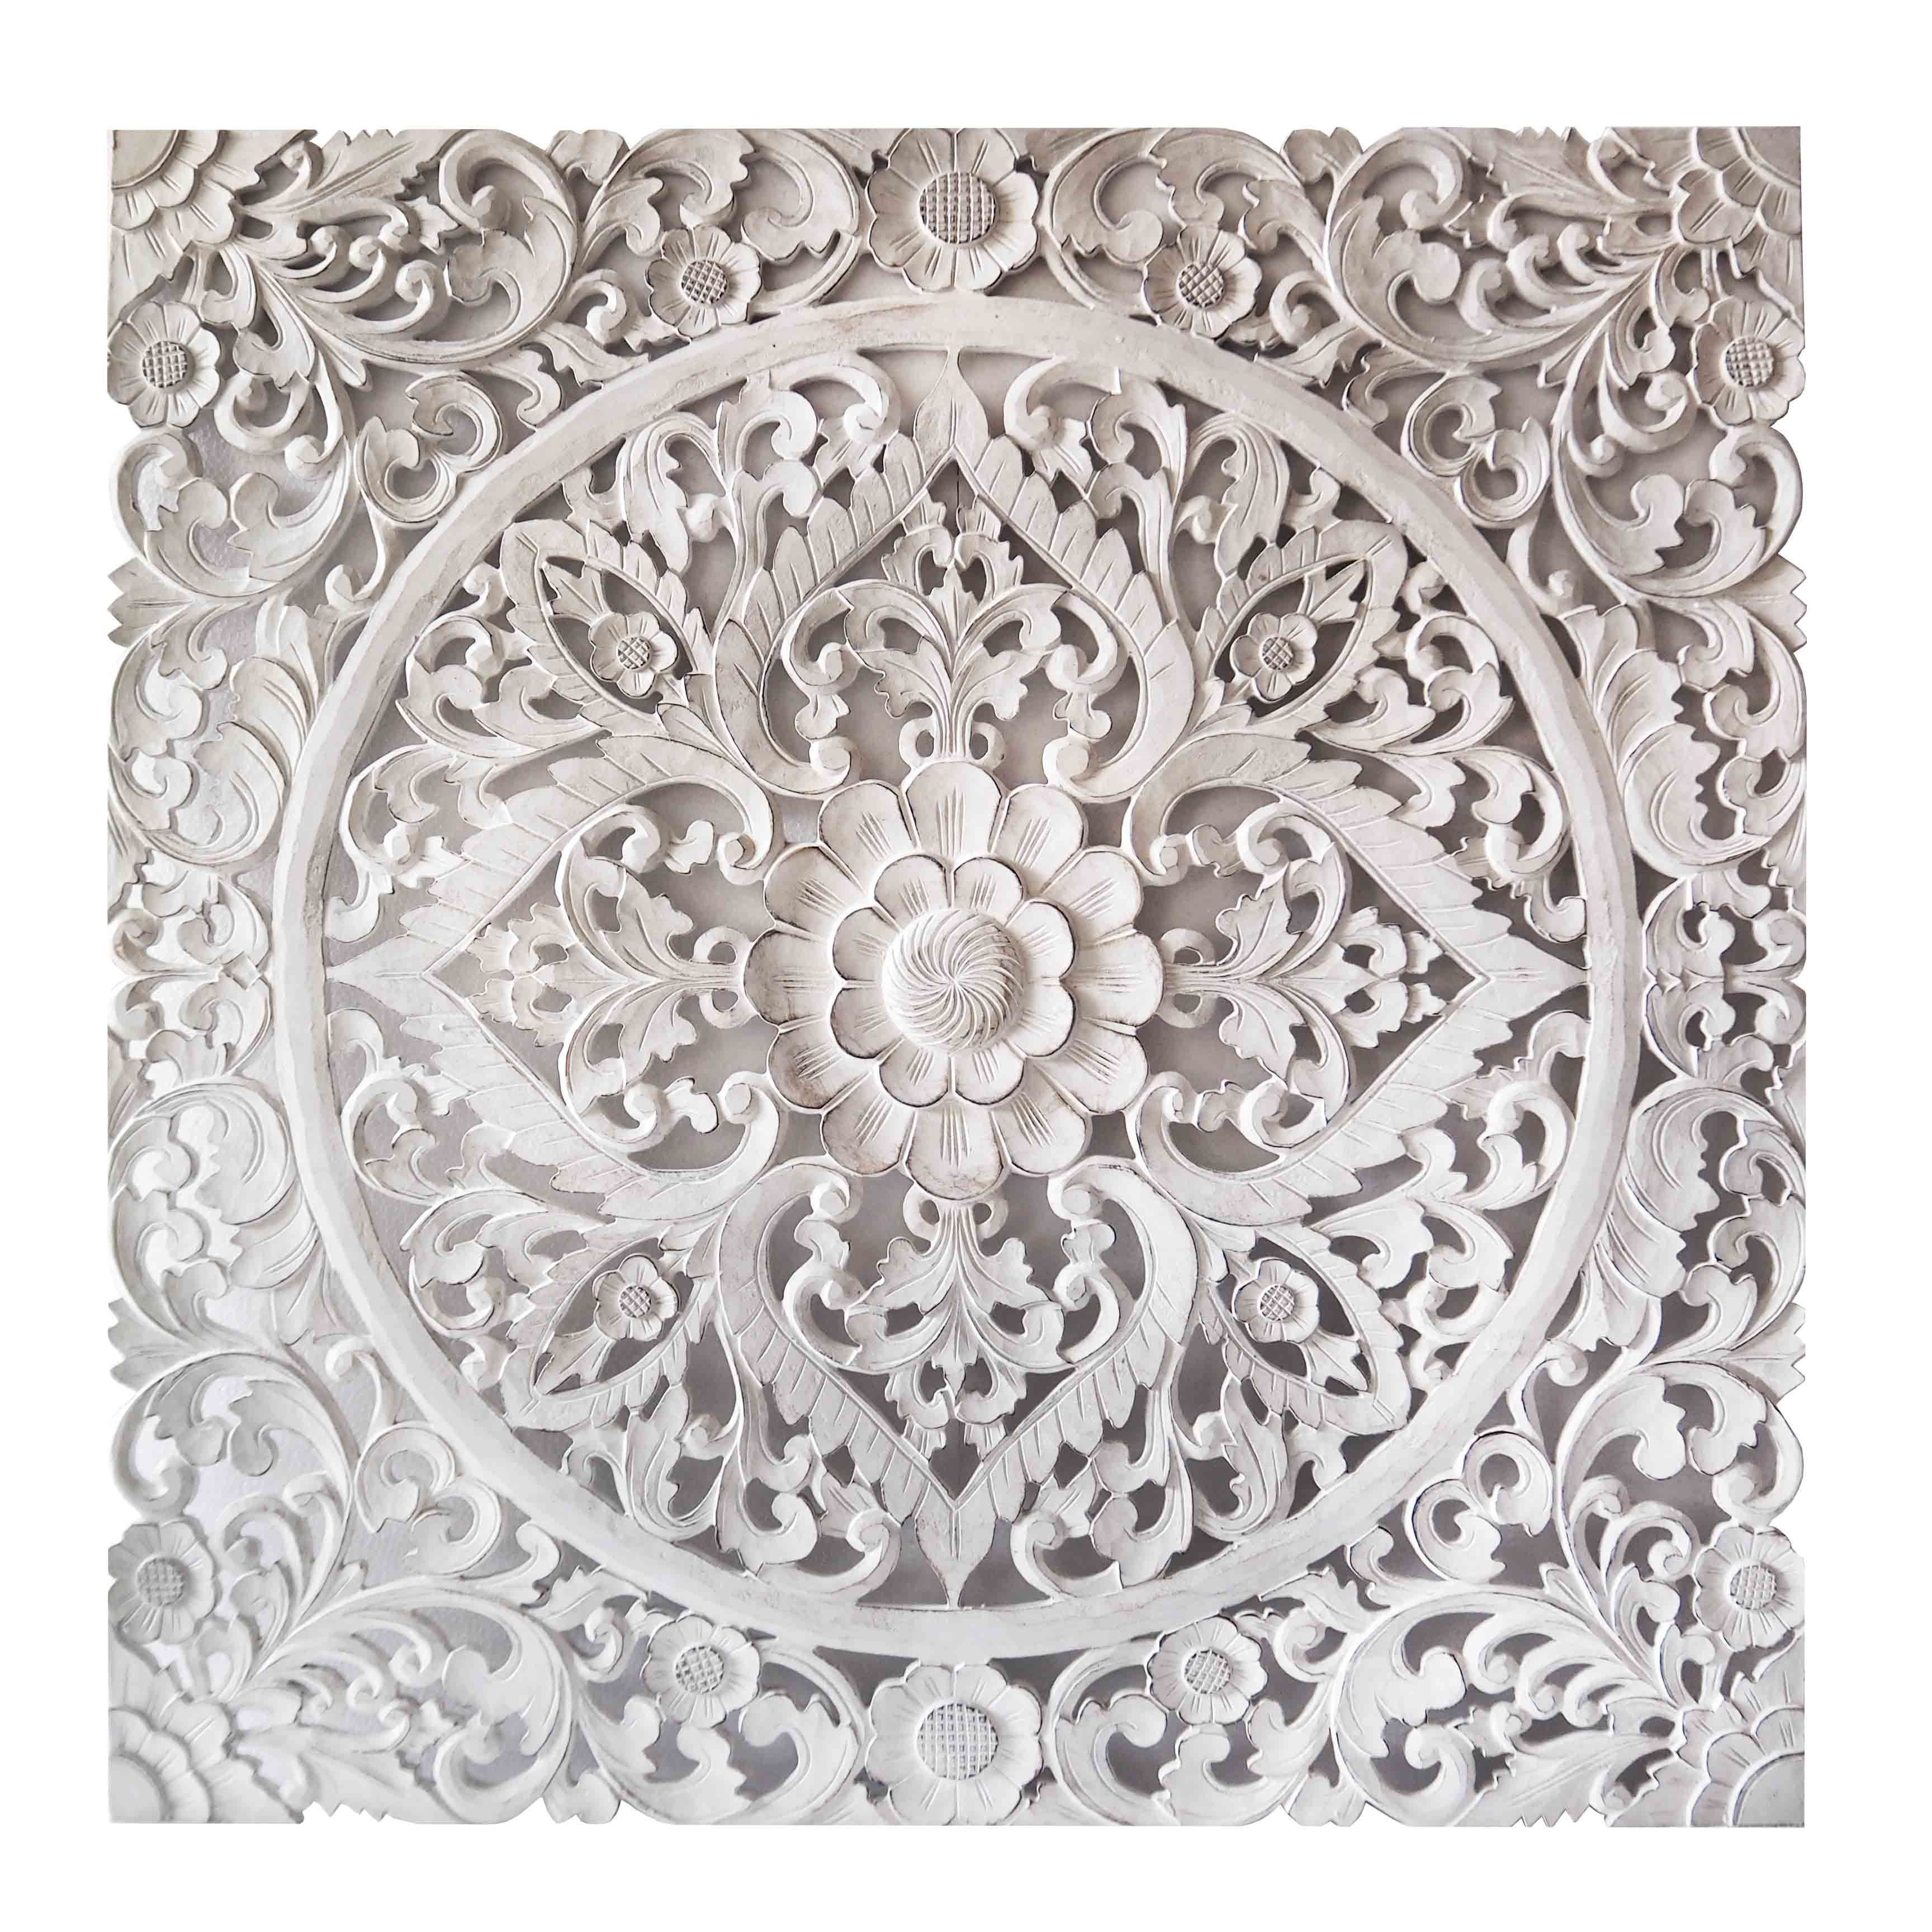 Balinese Hand Carved Mdf Decorative Panel Handmade Wood Wall Art Hanging From Bali Enhance Y Carved Wall Decor Carved Wood Wall Decor Carved Wood Wall Panels